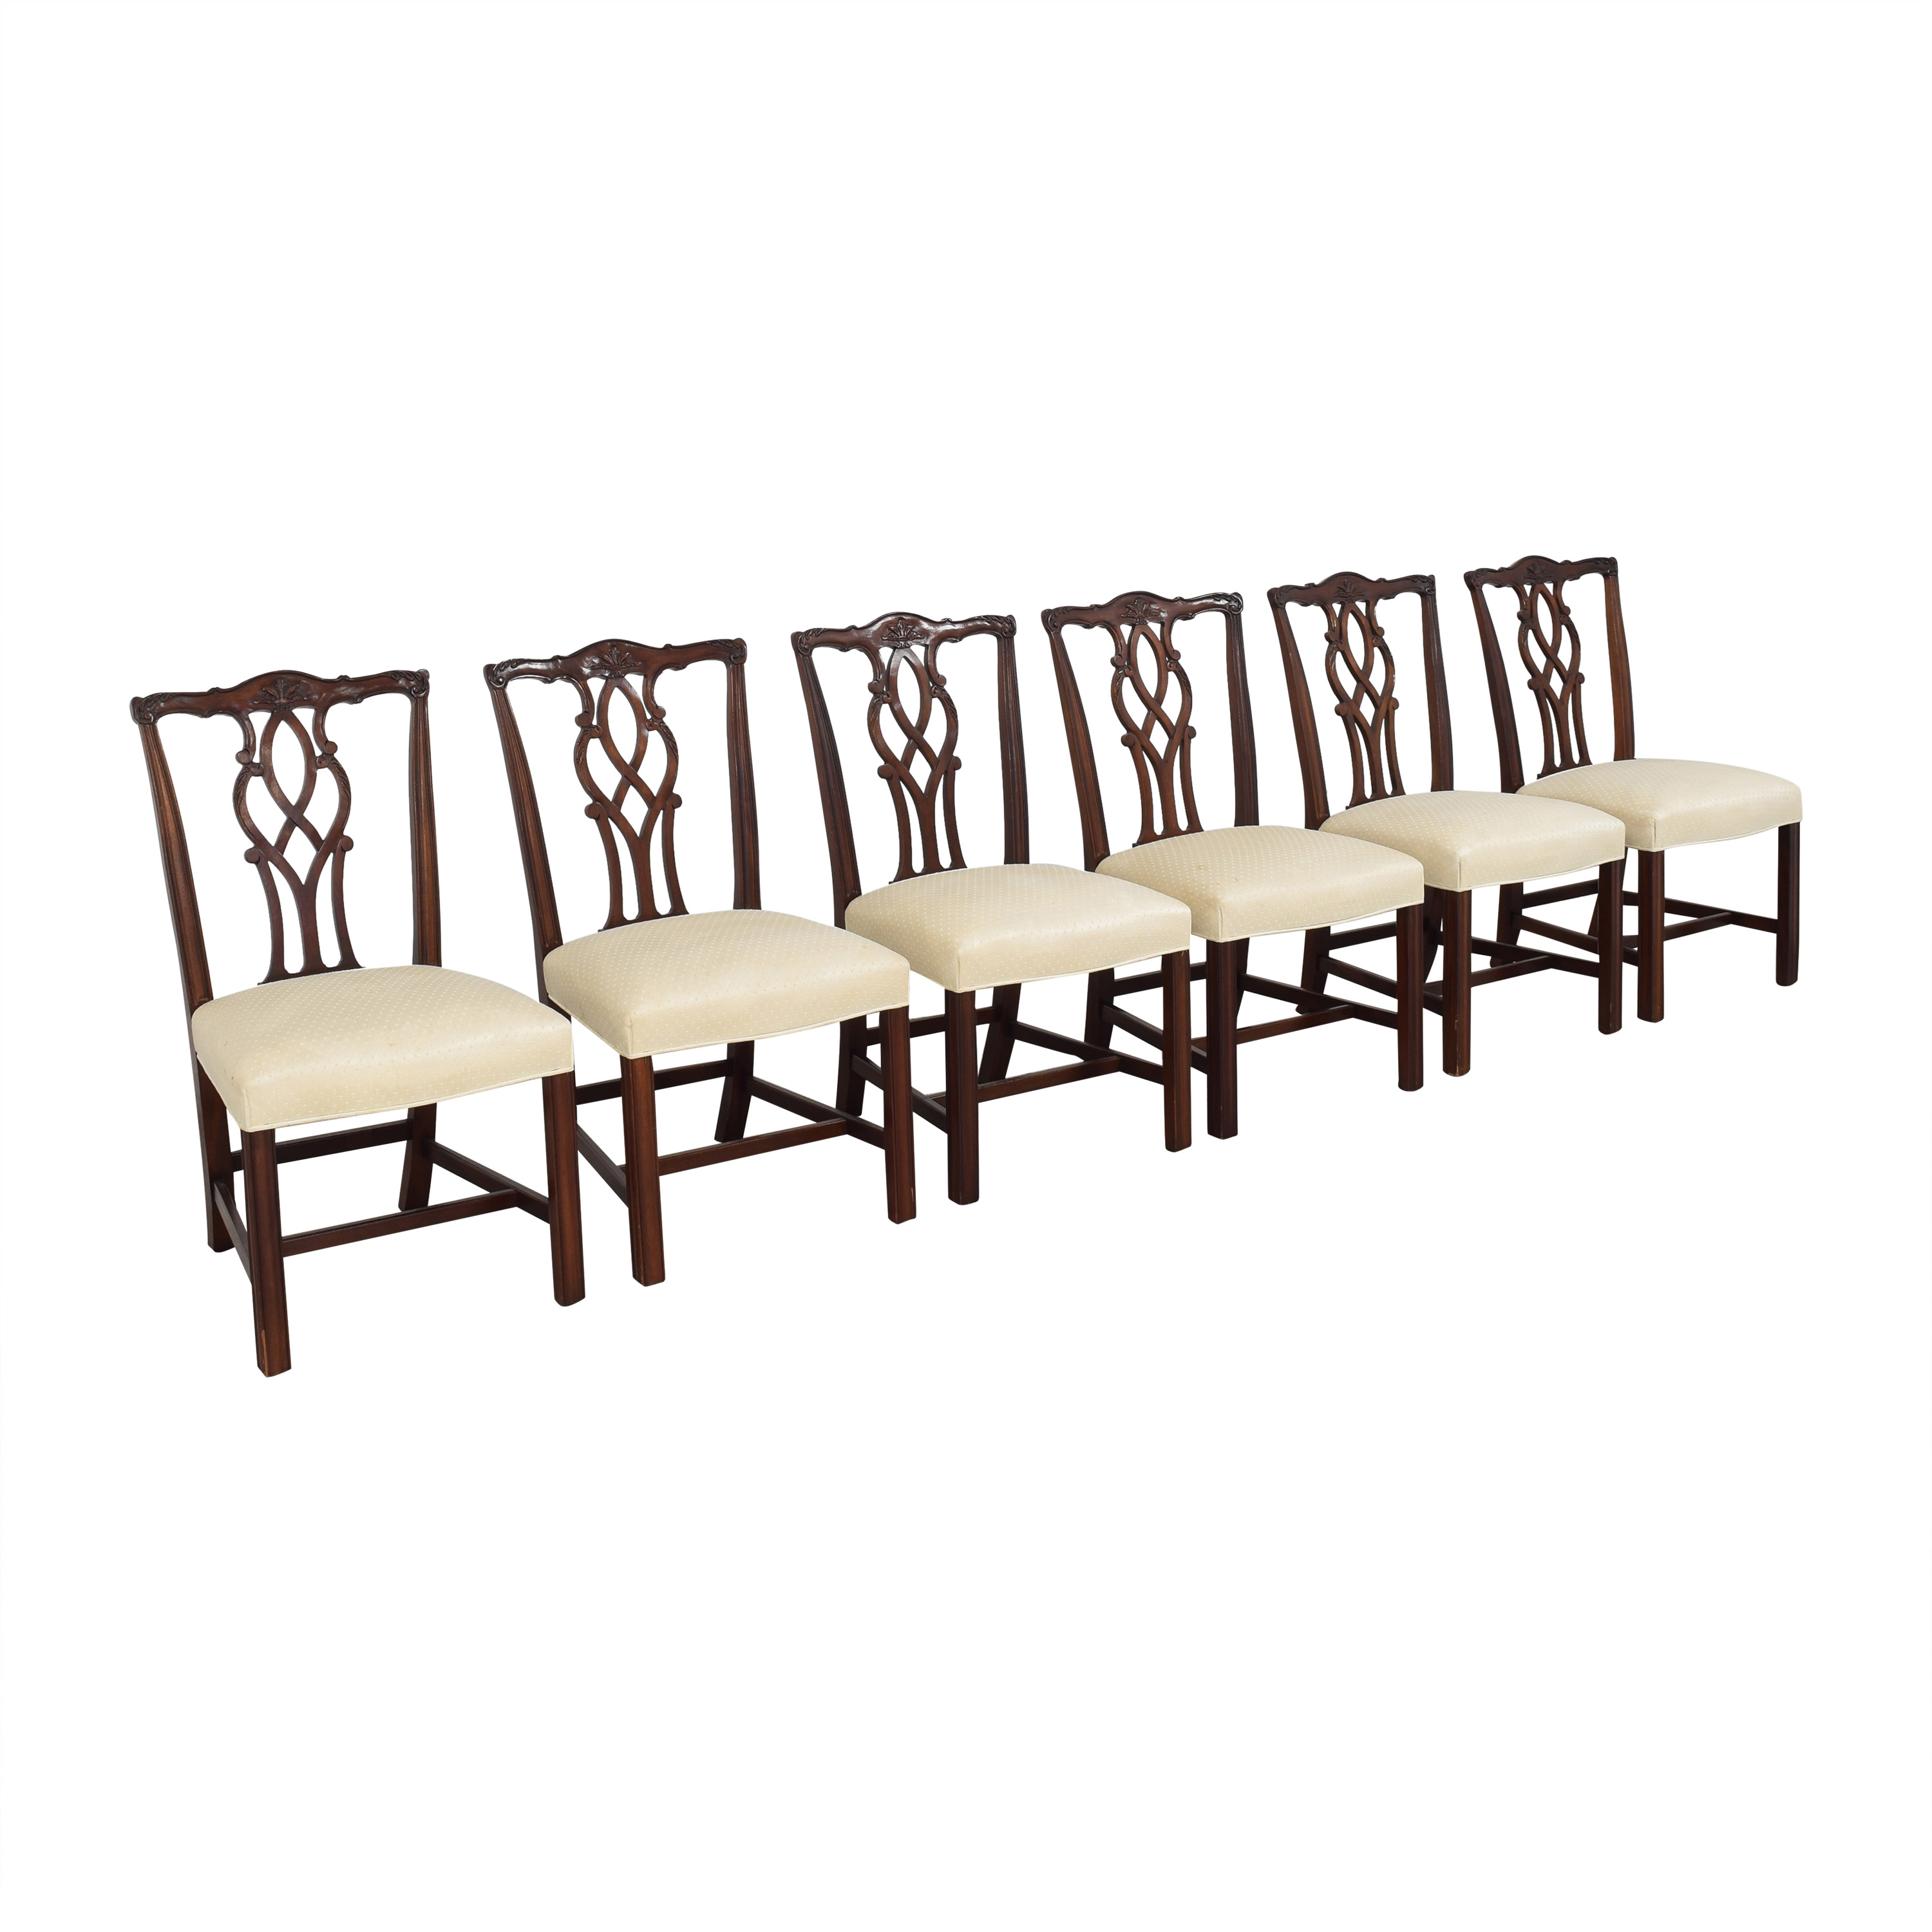 Kindel Kindel Chippendale Dining Side Chairs dark brown and off white